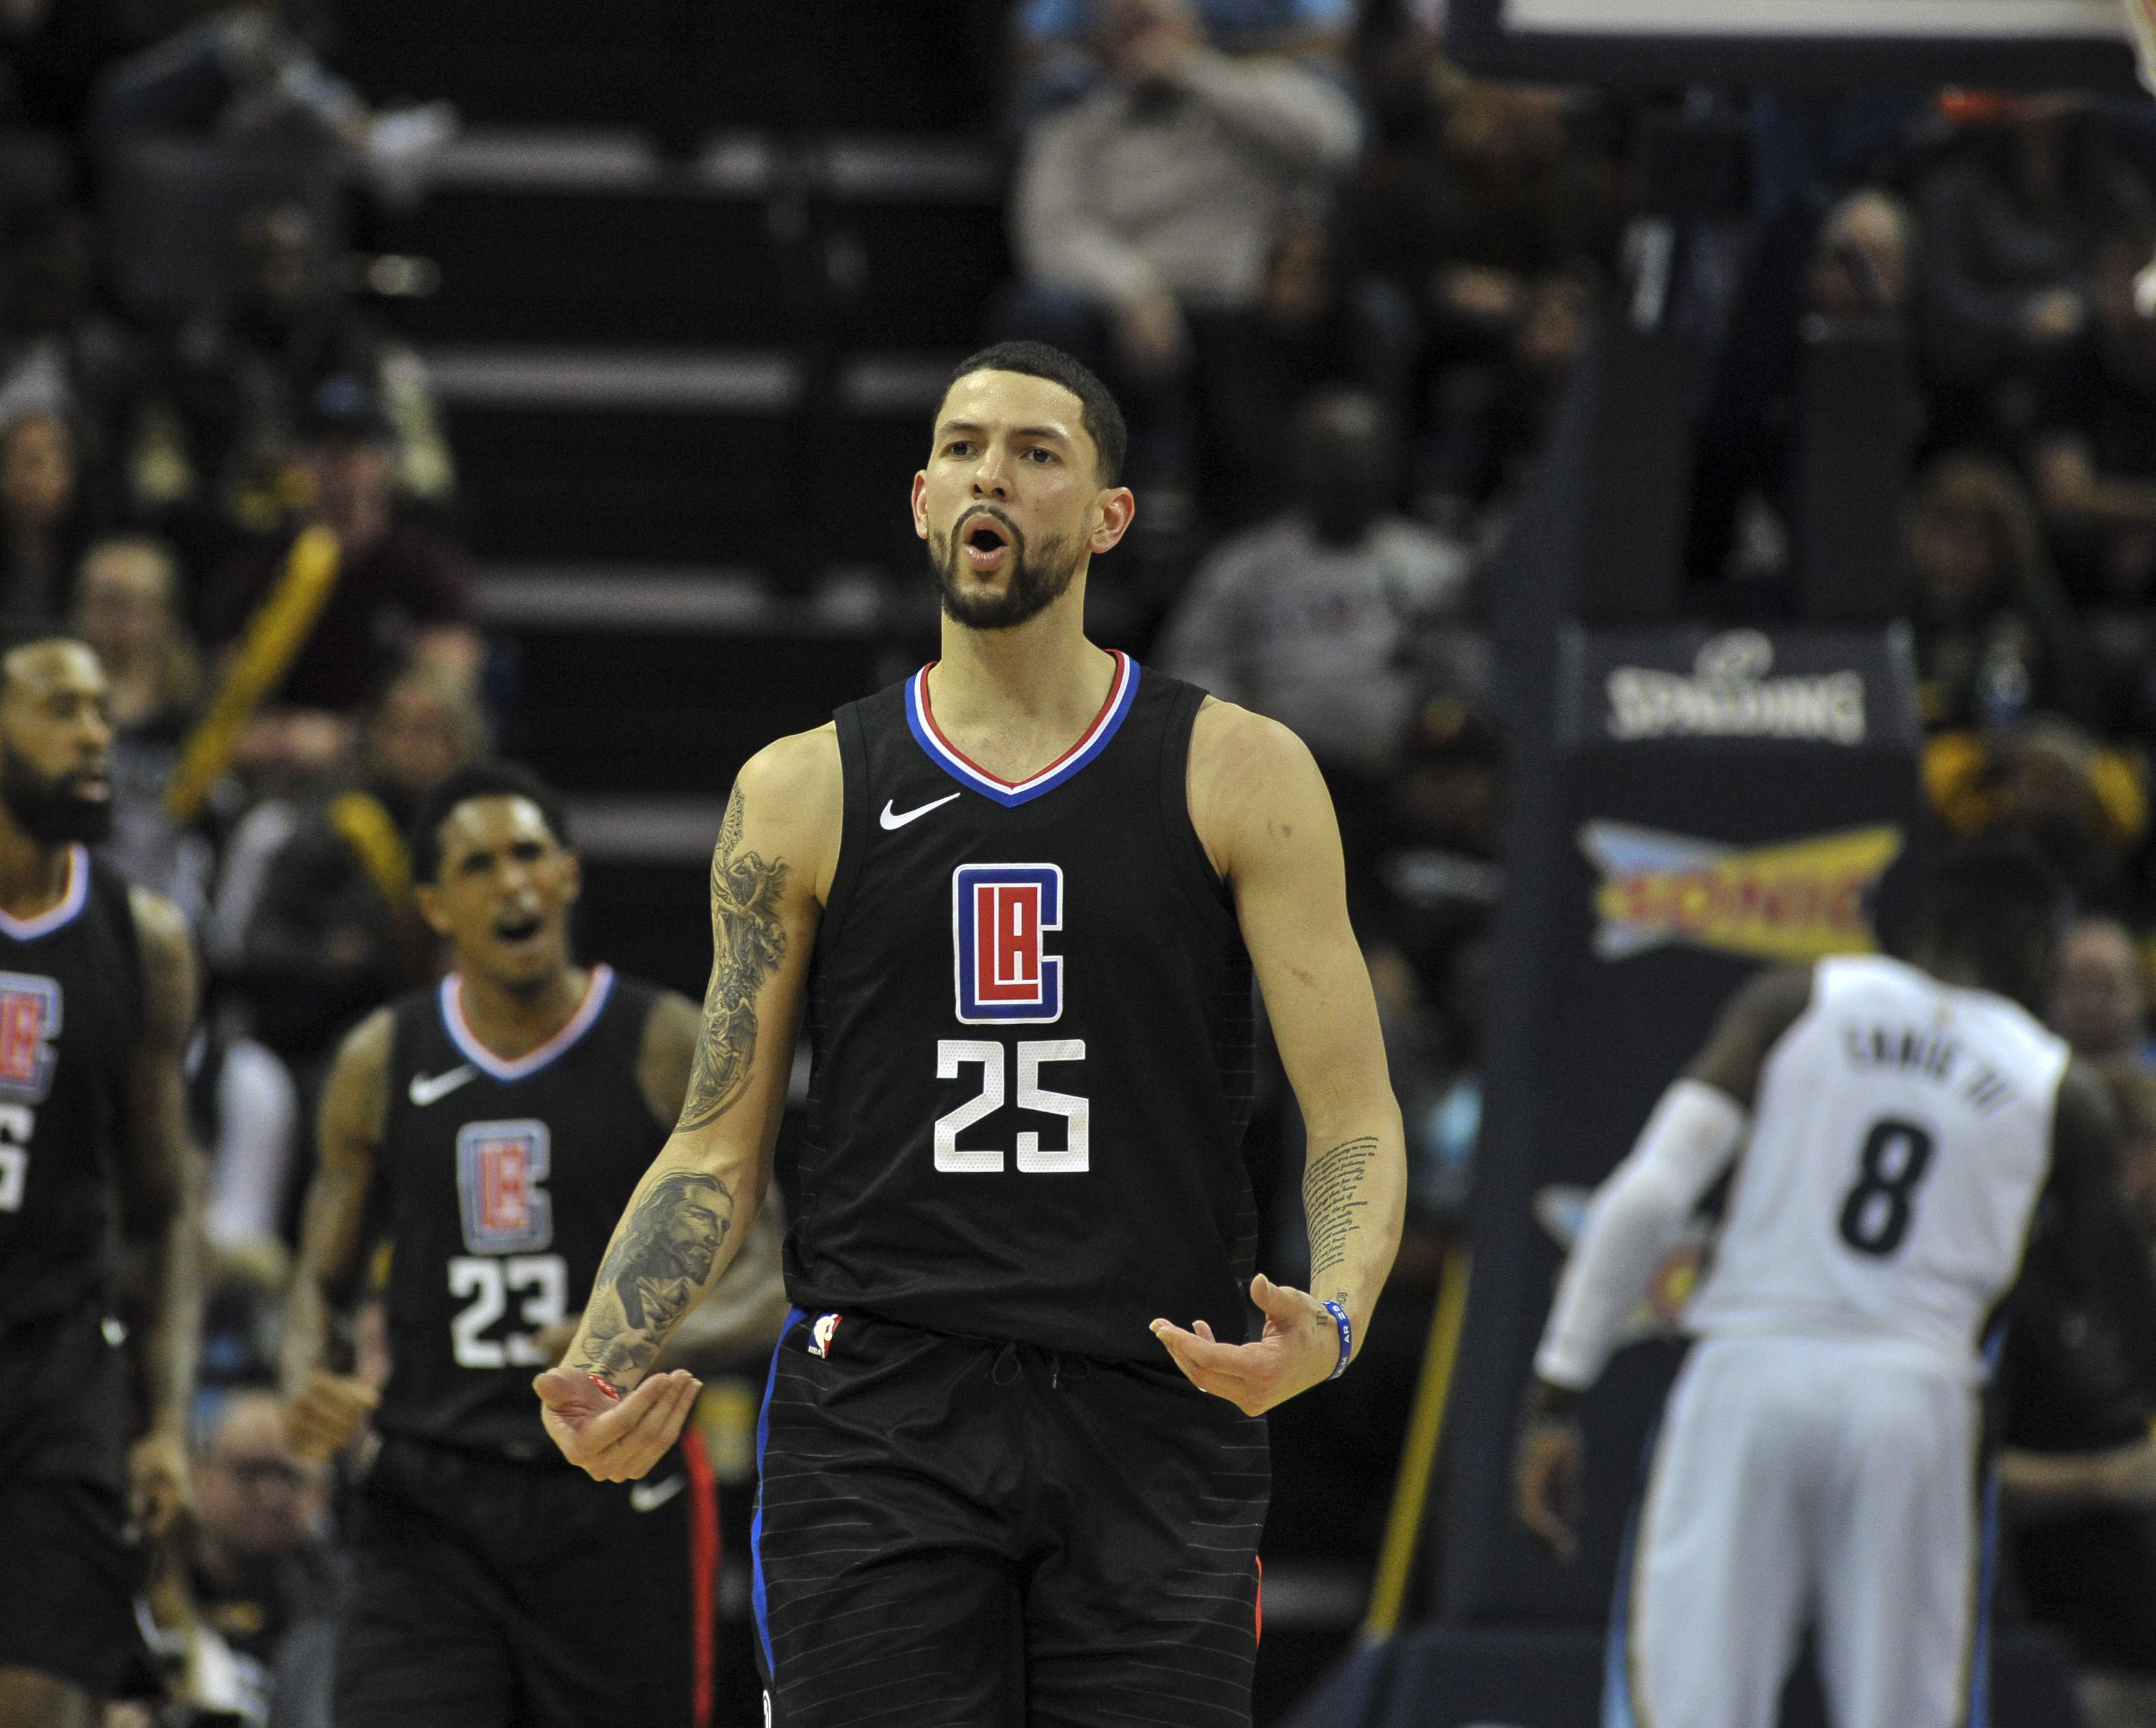 Clips Nation, a Los Angeles Clippers community